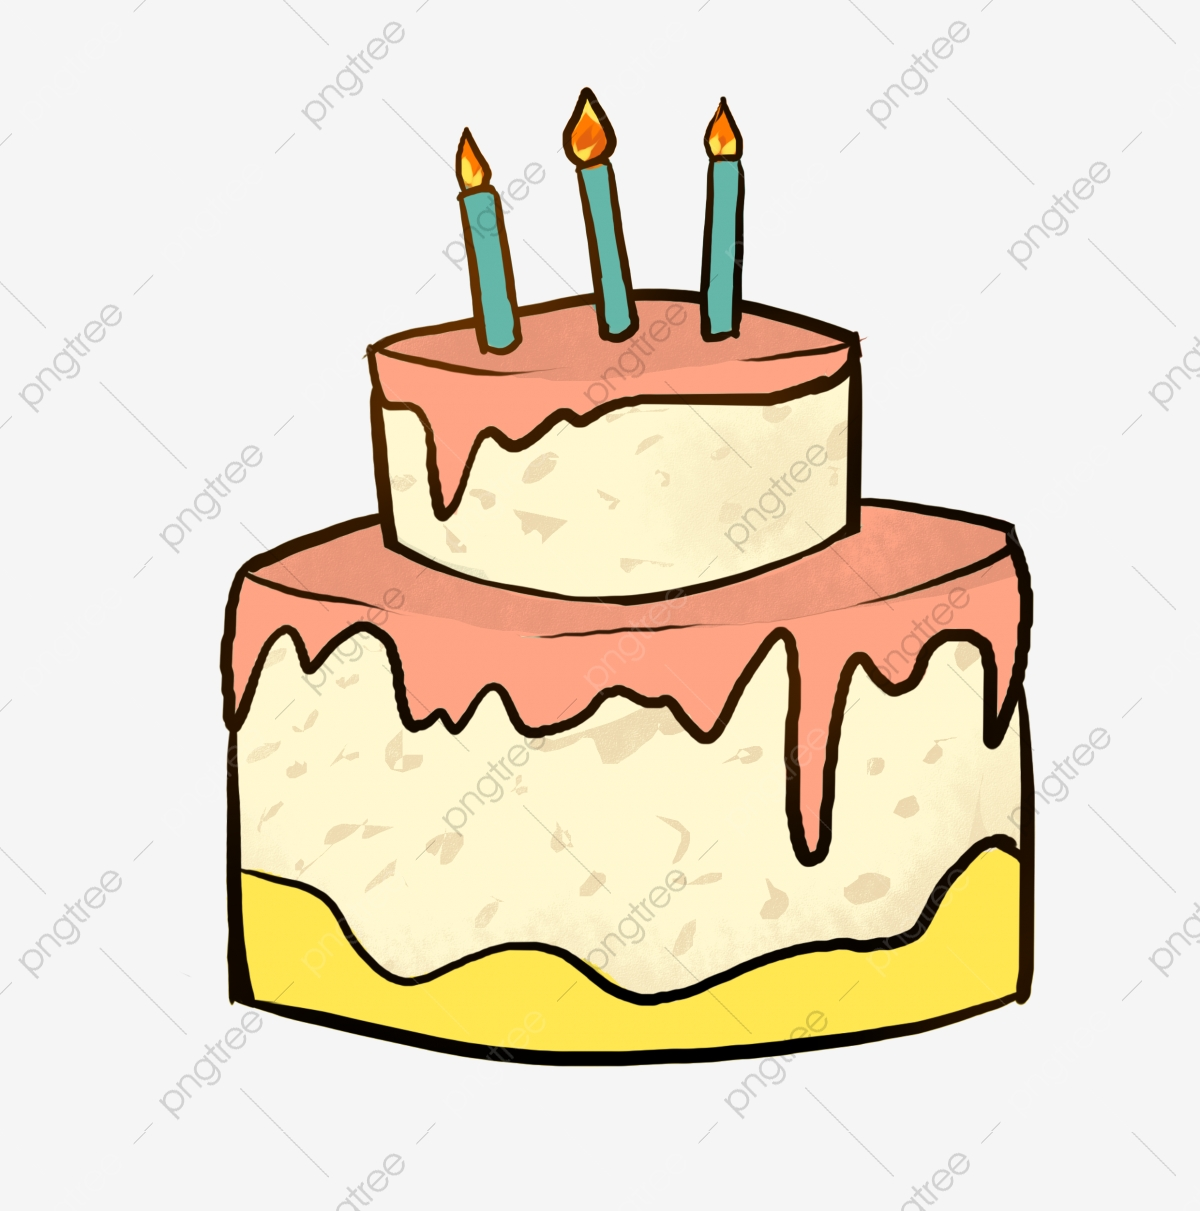 Birthday Cake Cartoon Illustration Burning Candle Cartoon Illustration Happy Birthday Png Transparent Clipart Image And Psd File For Free Download